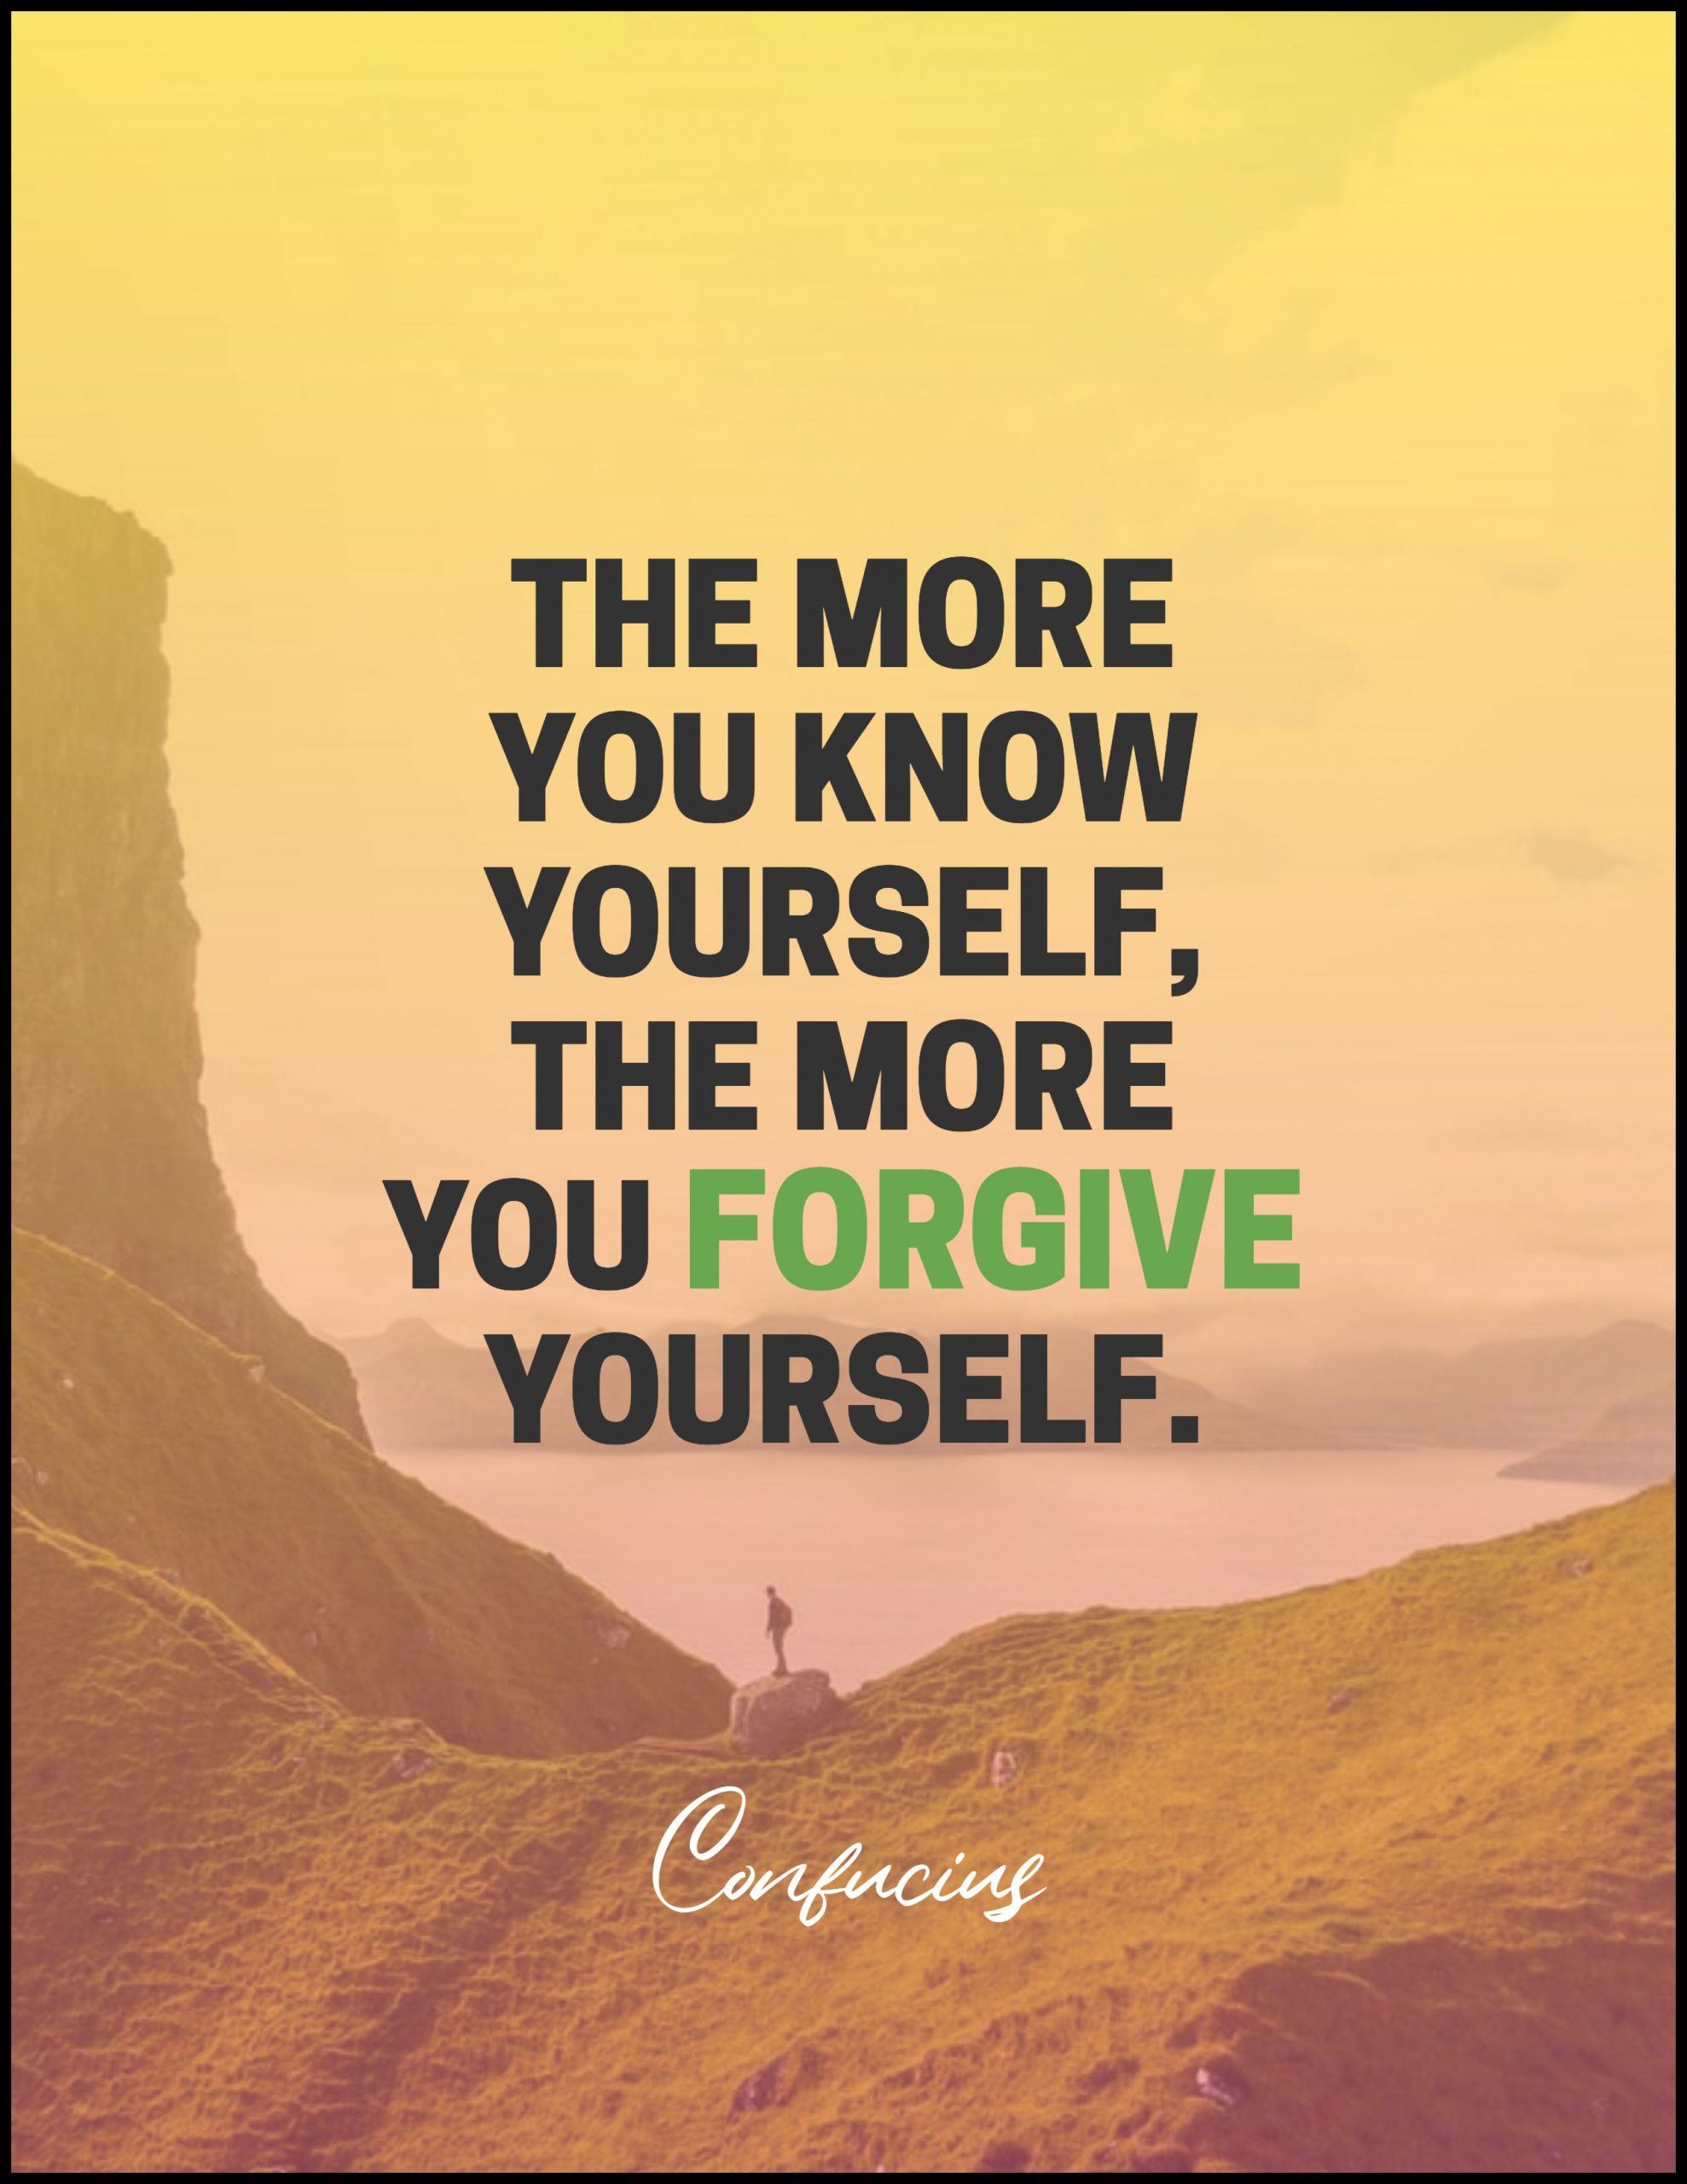 Quotes image of The more you know yourself, the more you forgive yourself.